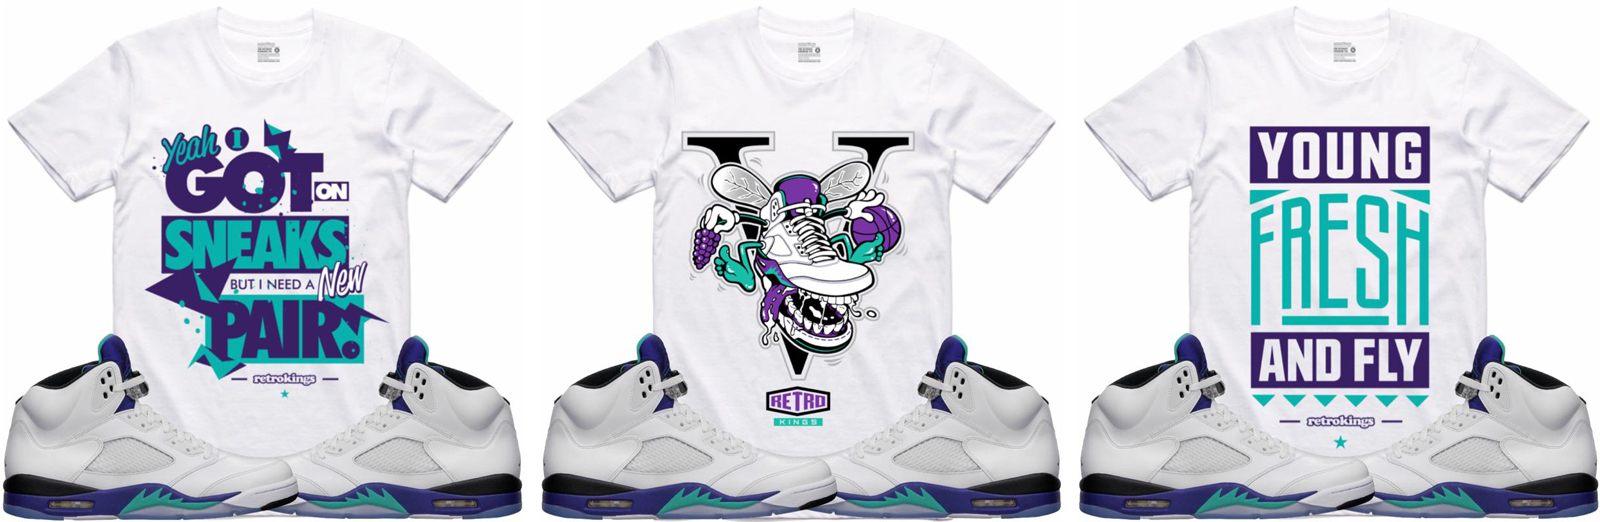 "955e281d214 Air Jordan 5 ""Grape / Fresh Prince"" x Retro Kings Sneaker Shirts to Match"